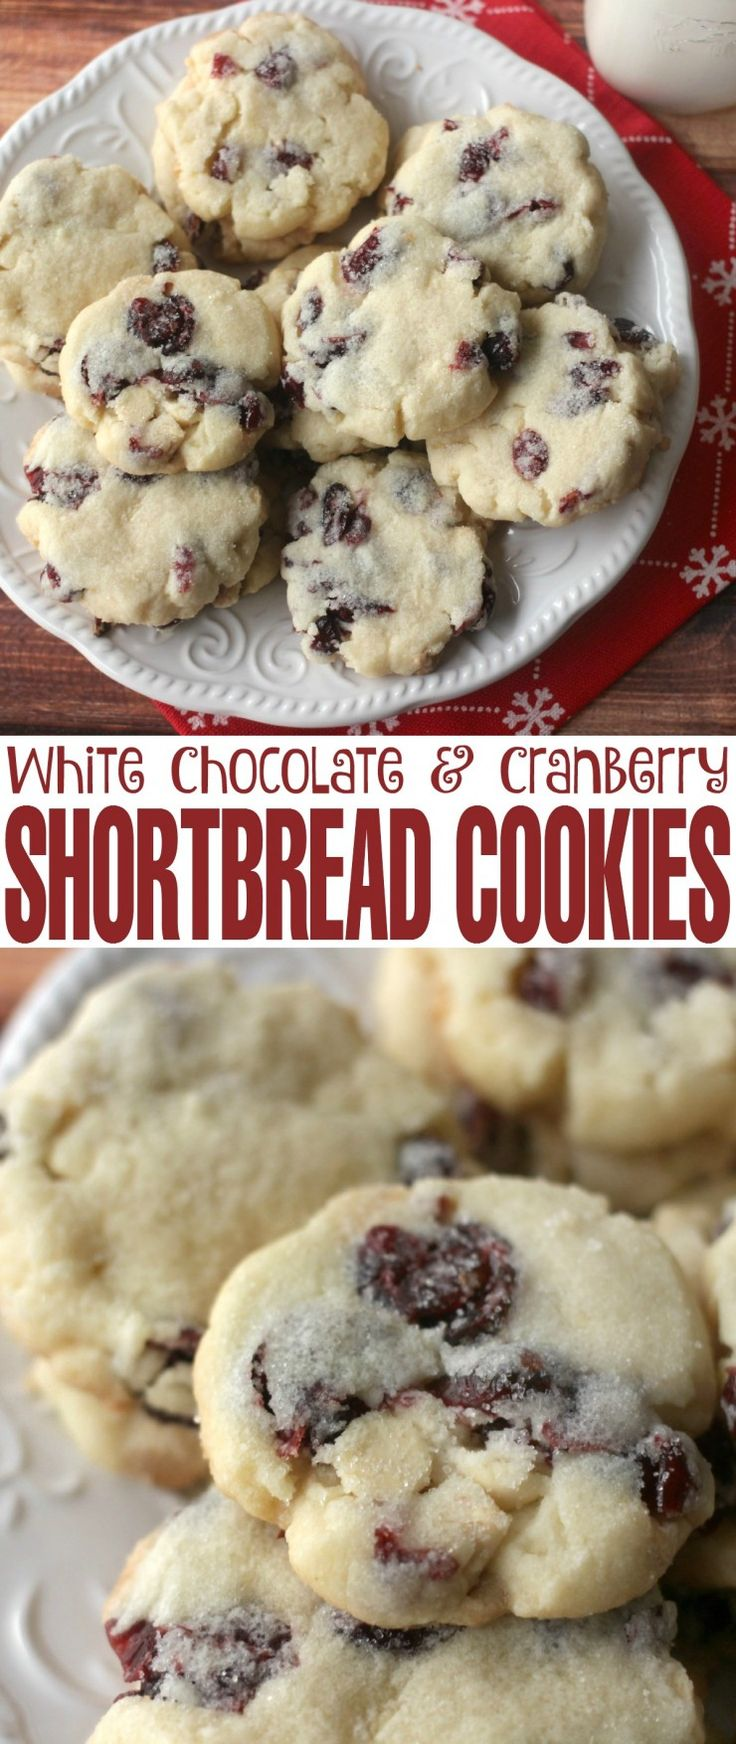 White Chocolate & Cranberry Shortbread cookies- are a delicious twist on a classic shortbread cookie recipe! Great Christmas Cookies! (Christmas Bake Shortbread)